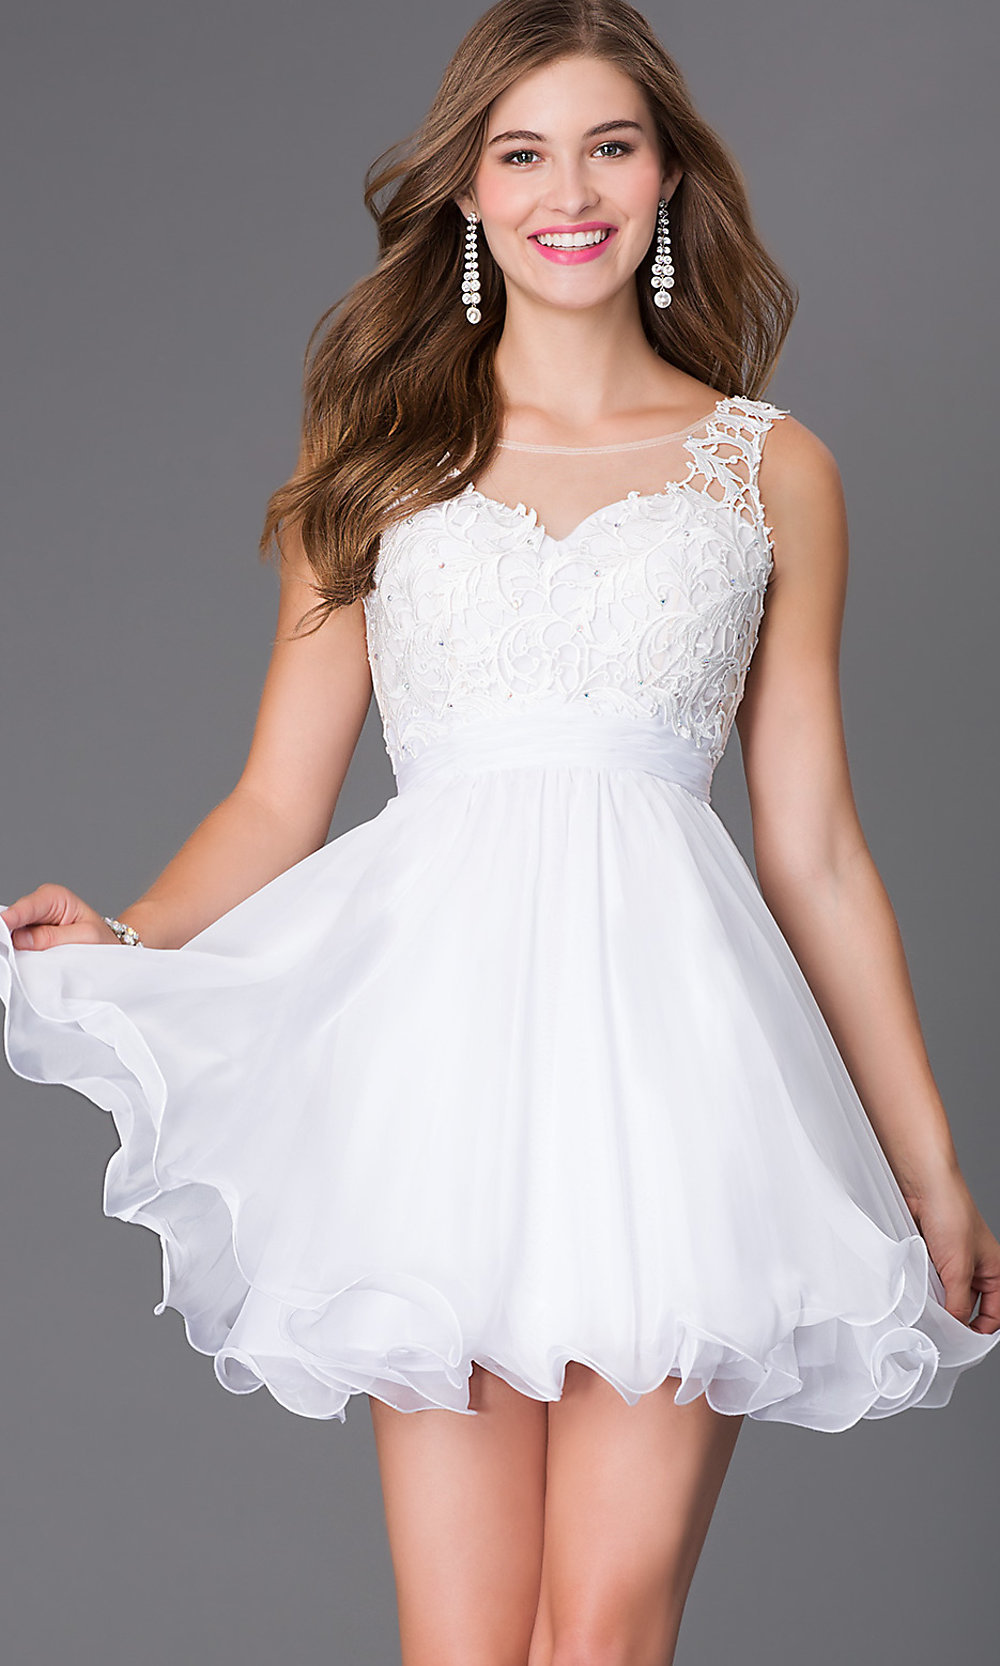 Lace-Bodice Short A-Line Homecoming Dress - PromGirl